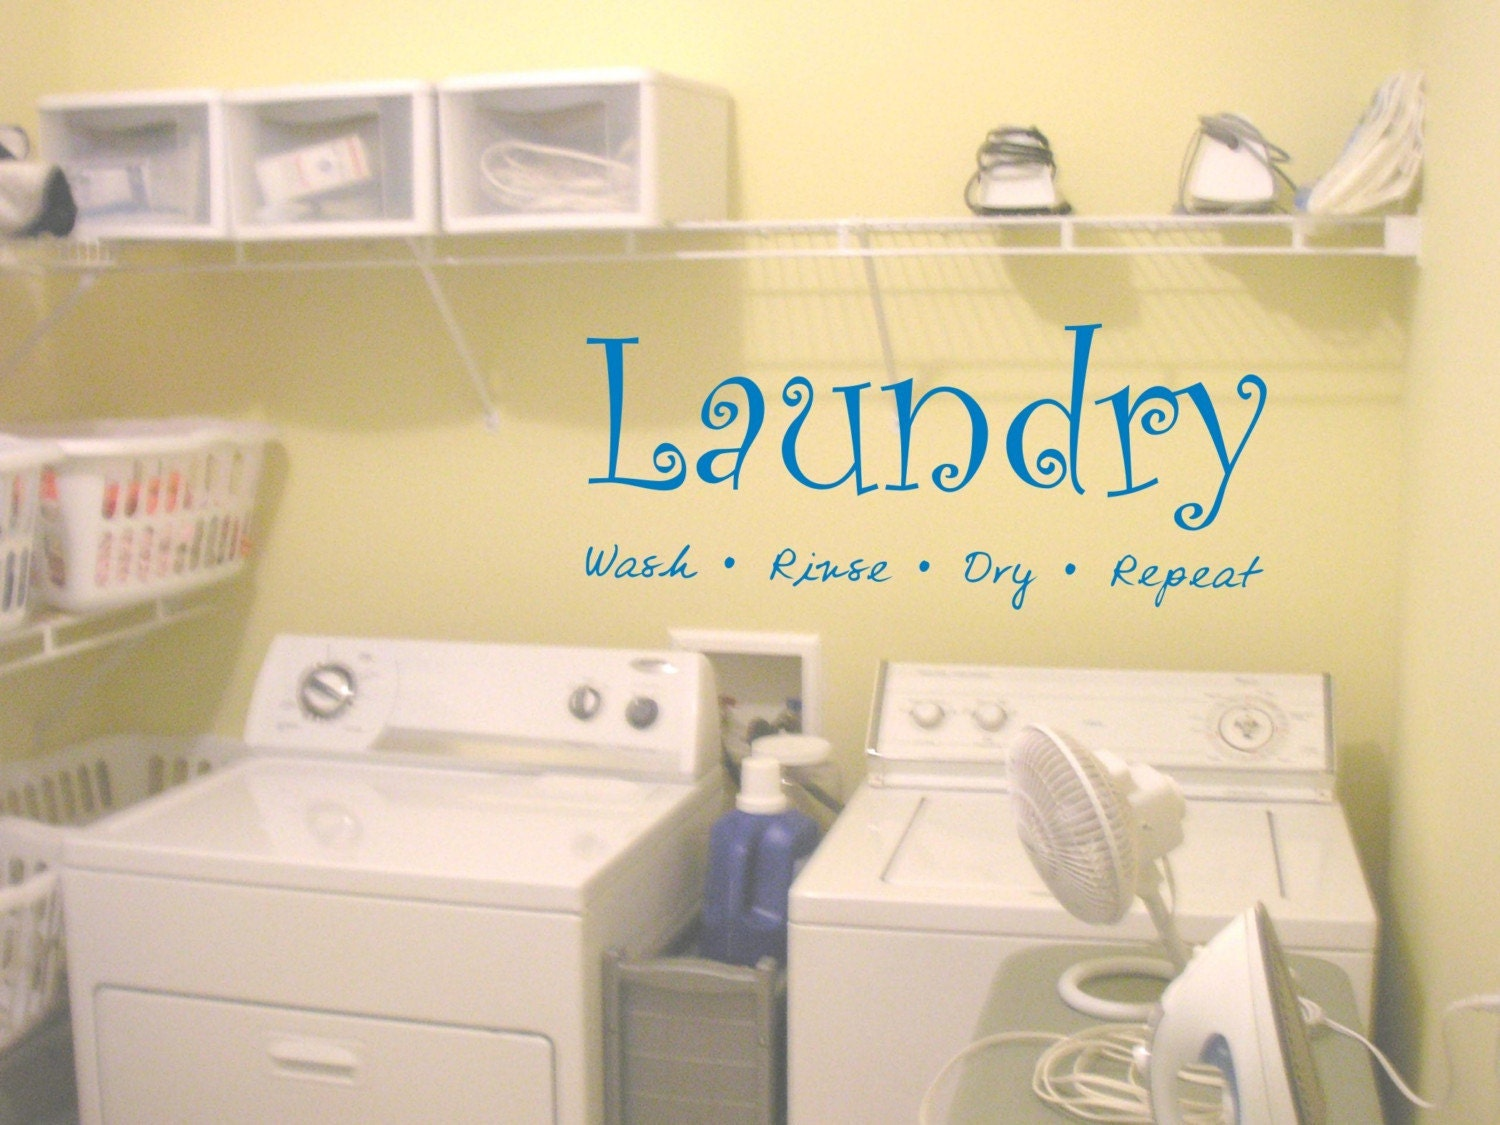 Laundry Room Wall Decal Sticker Wash Fold Rinse by DabbleDown